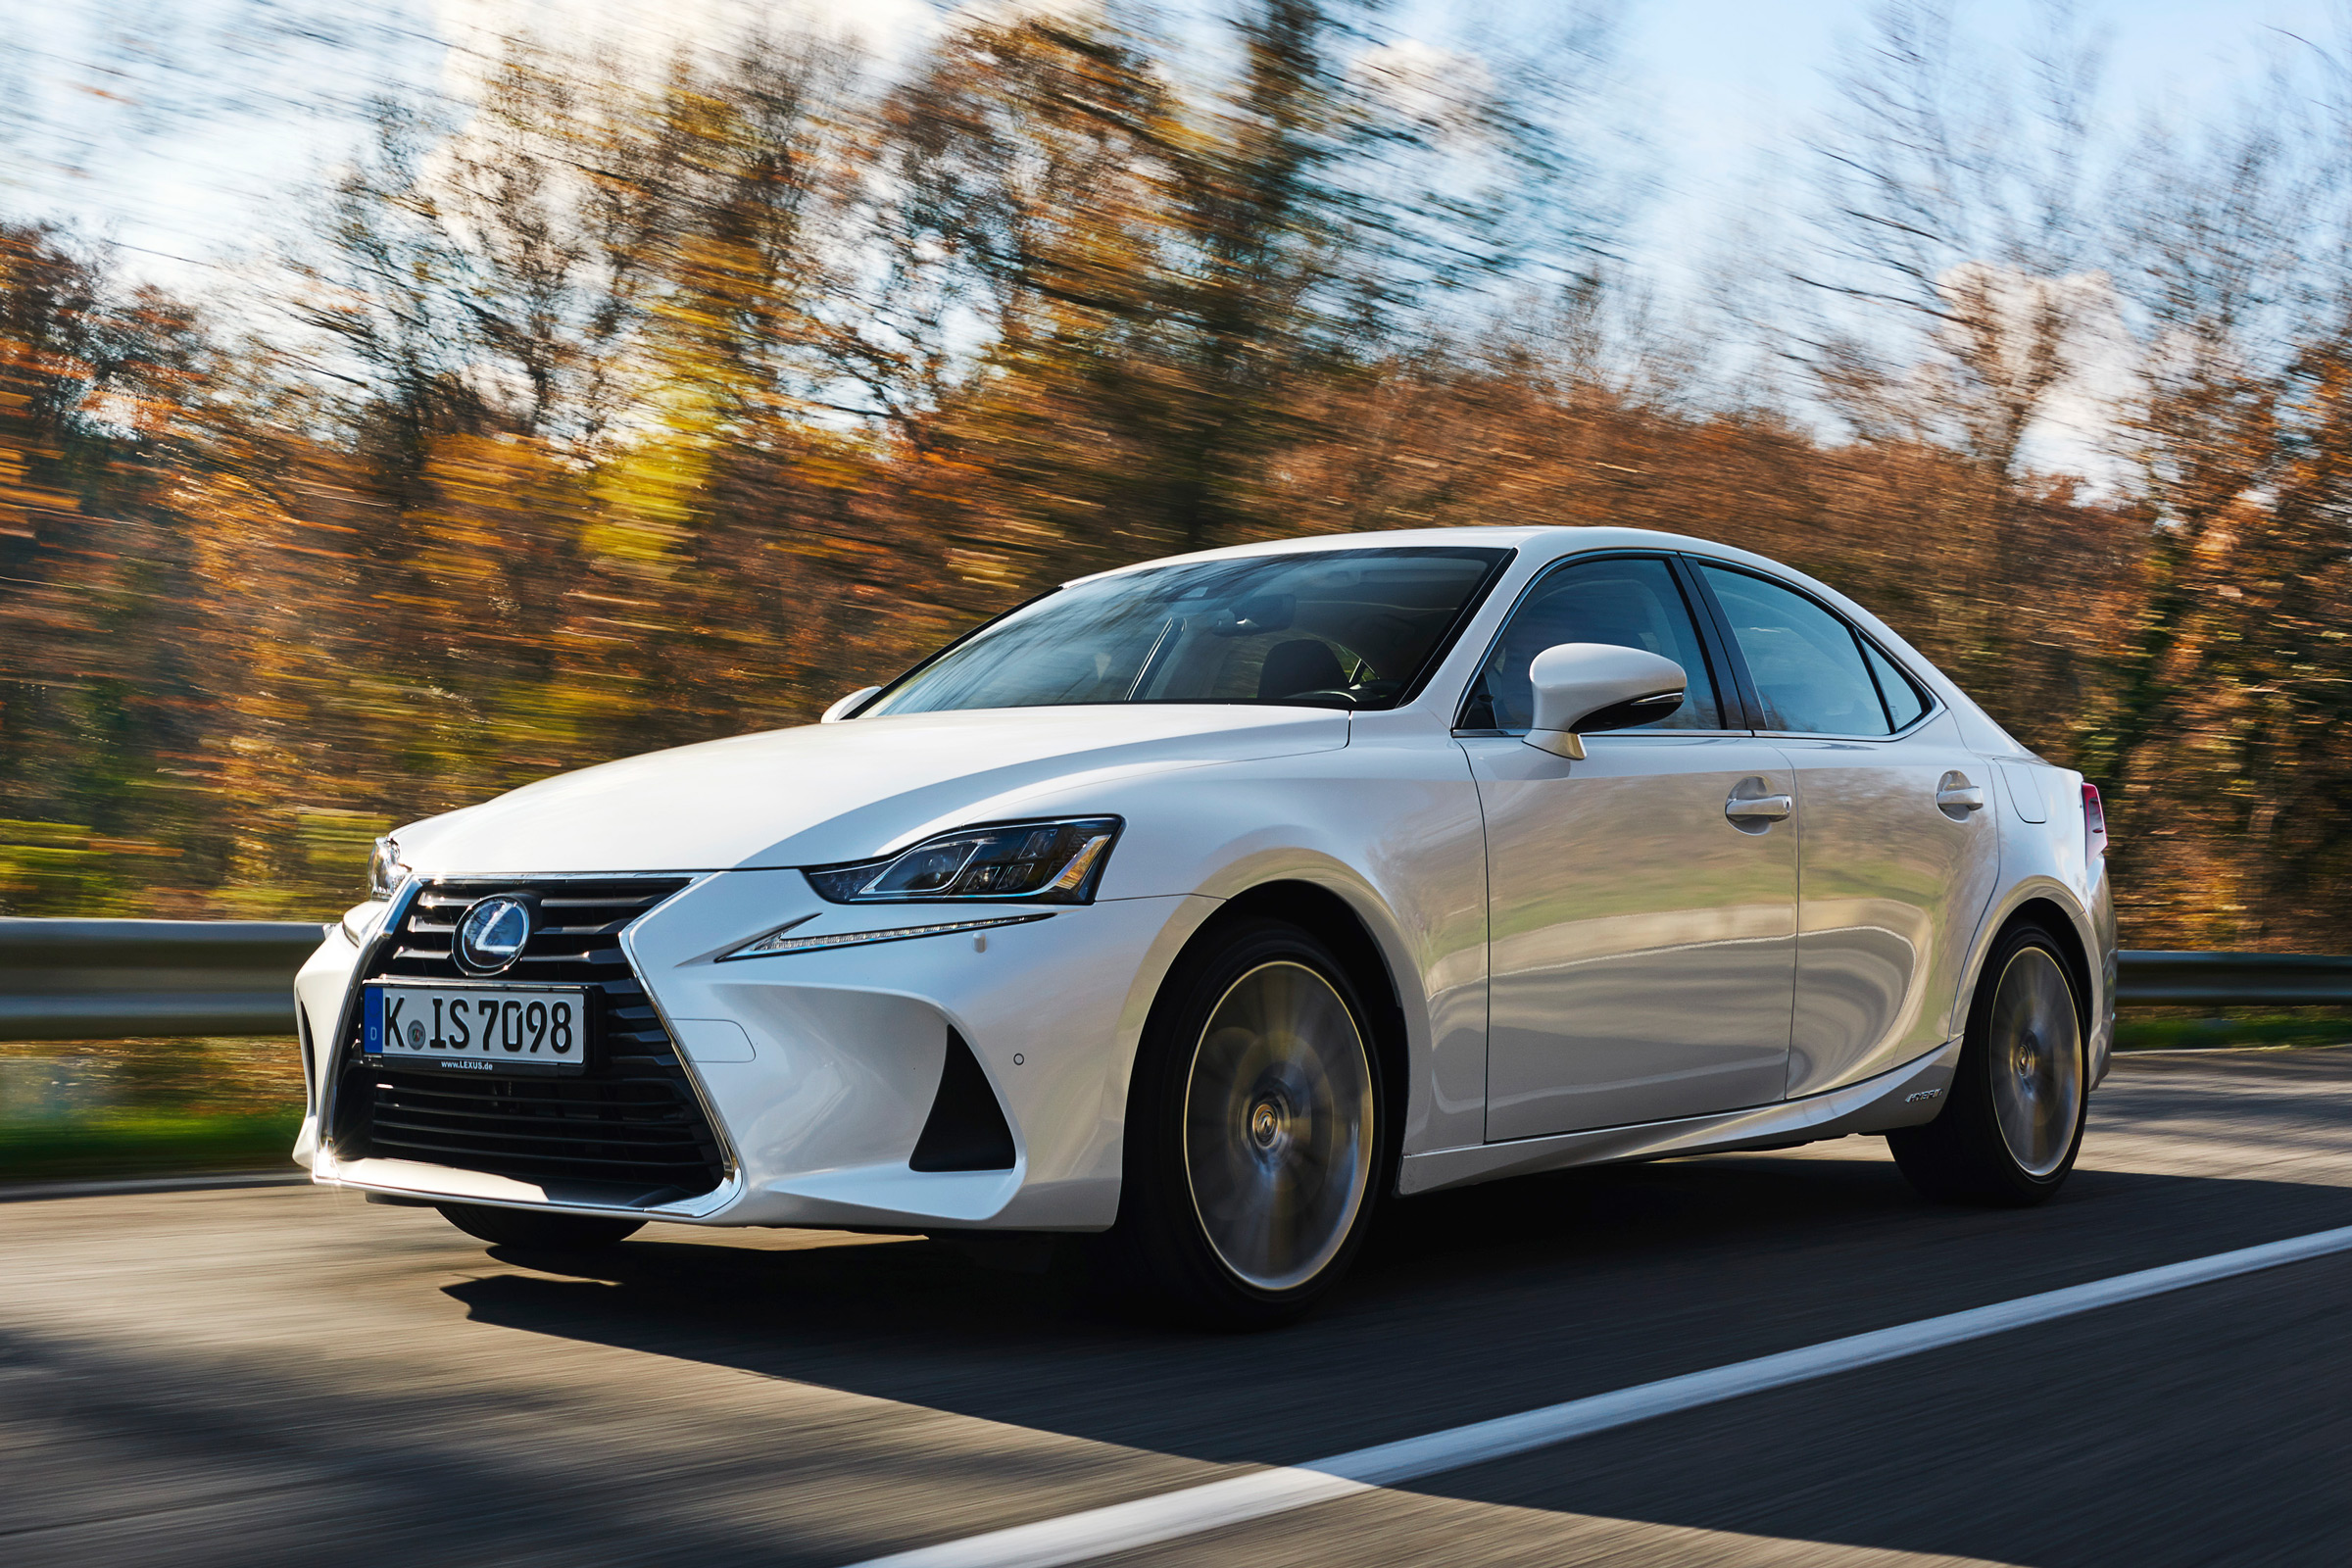 2017 Lexus IS 300h Test Drive Front And Side View (Photo 6 of 13)